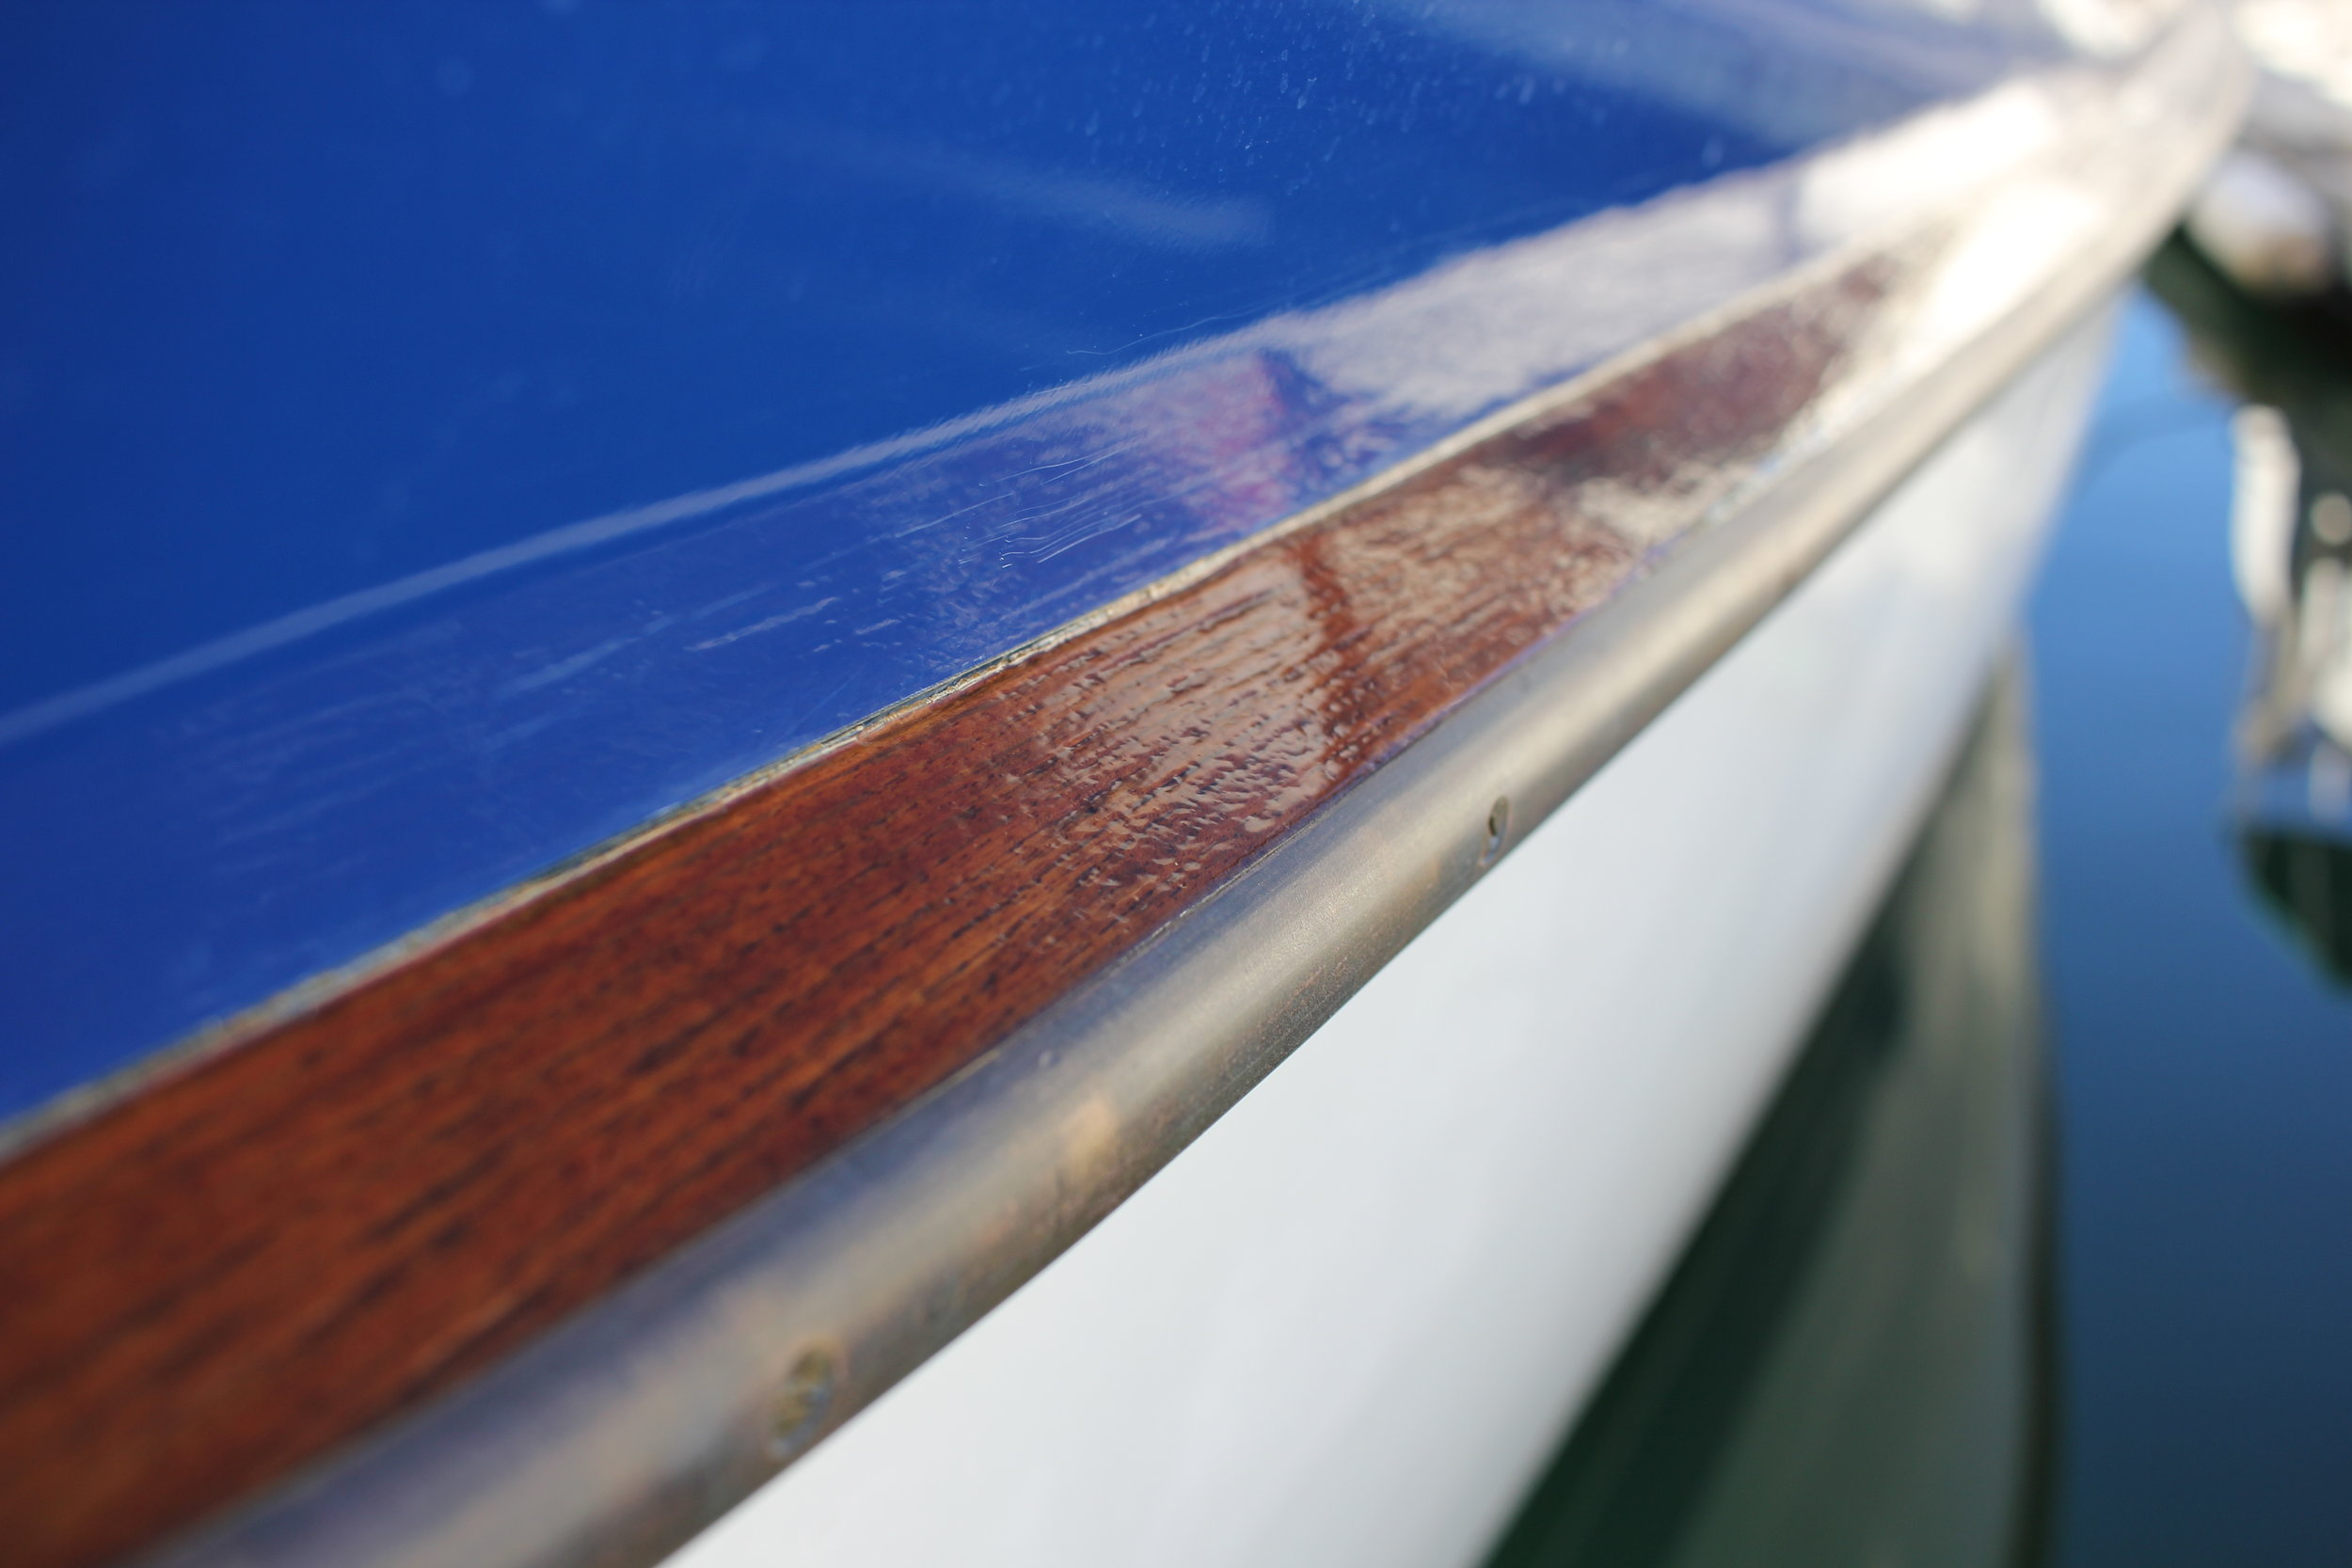 Shiny and bright! The rub rail is finally finished!